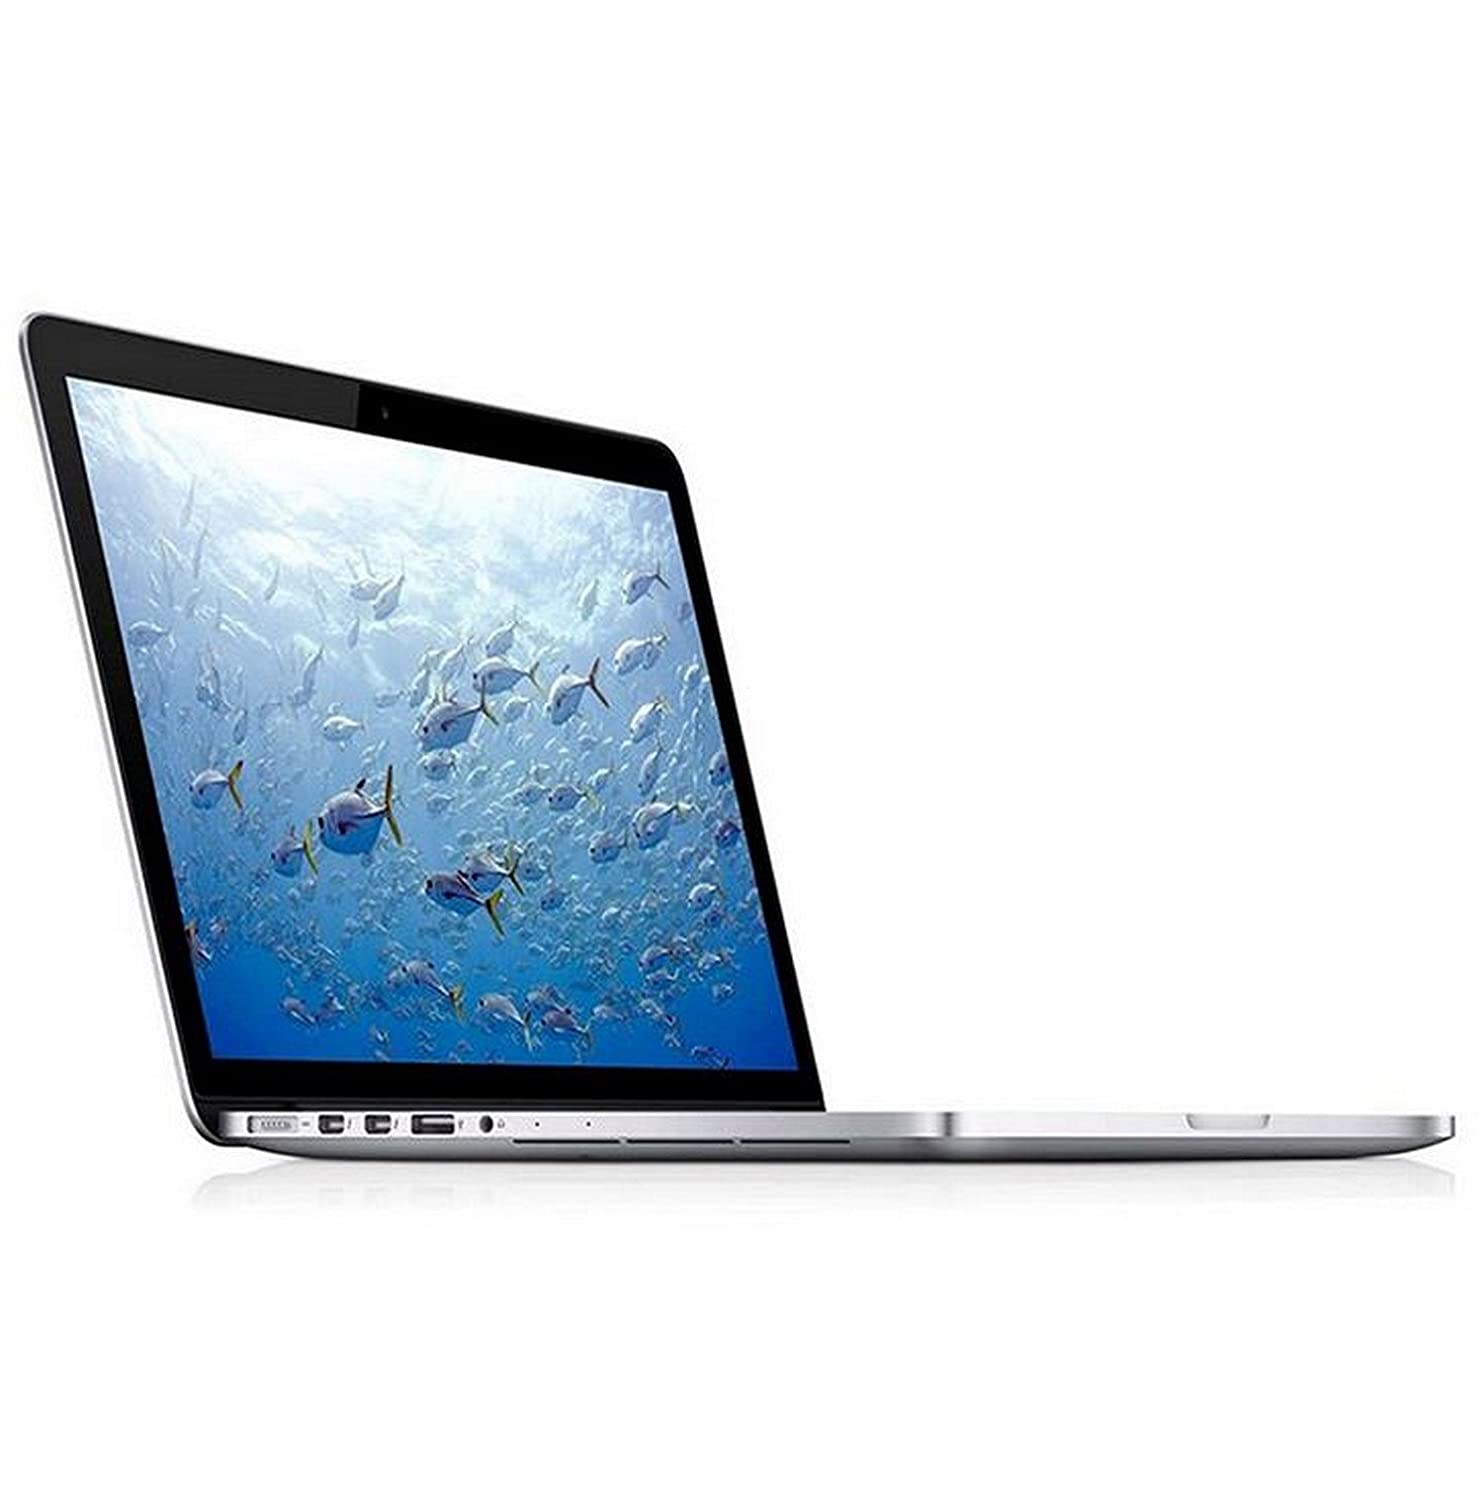 apple macbook. buy apple macbook pro mjlq2hn/a 15-inch laptop (core i7/16gb/256gb/mac os/integrated graphics) online at low prices in india - amazon.in macbook